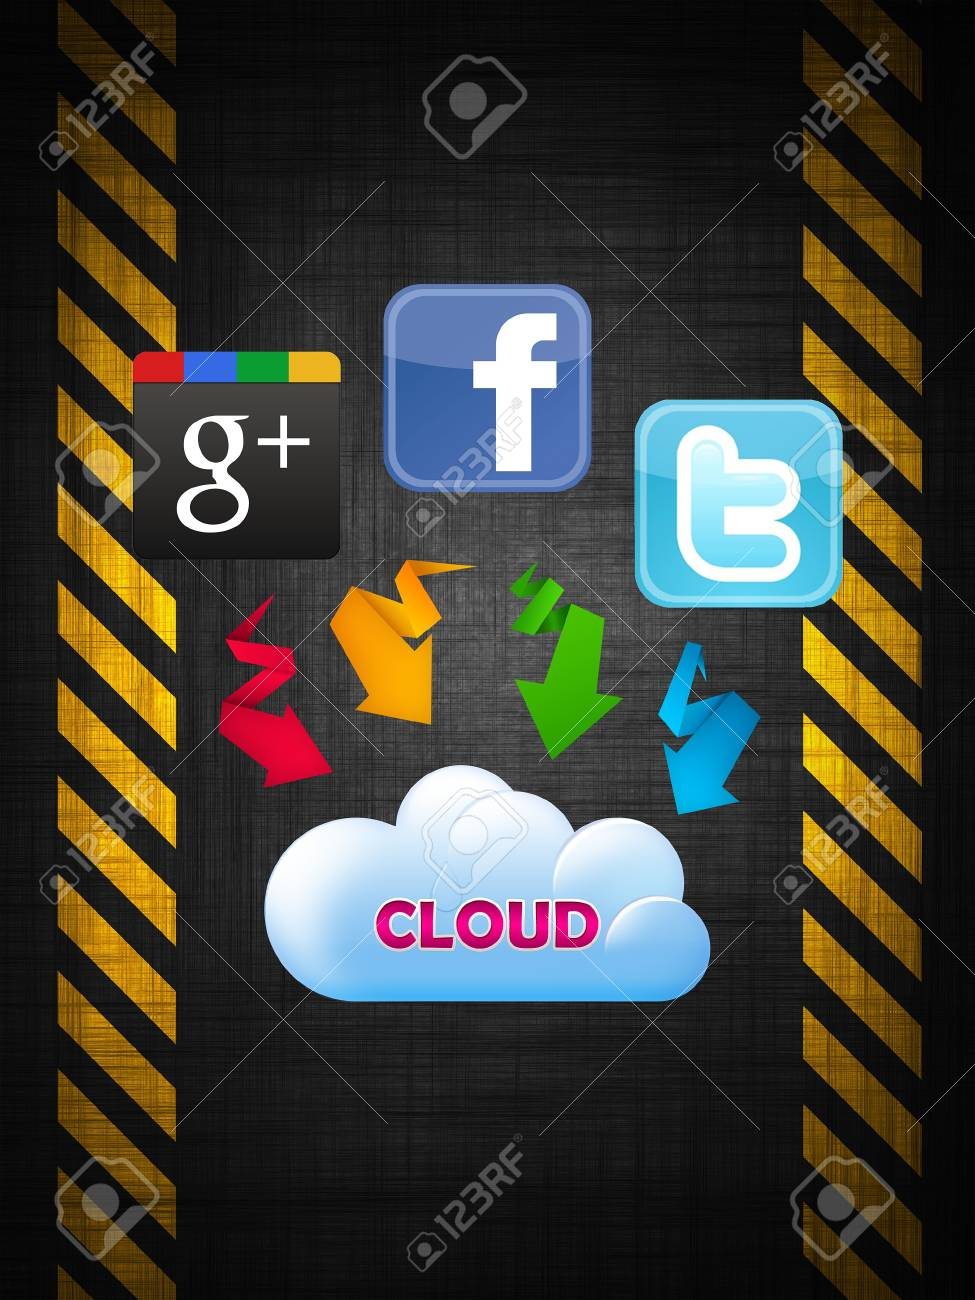 The Cloud technology connected to social networks Stock Photo - 19510154